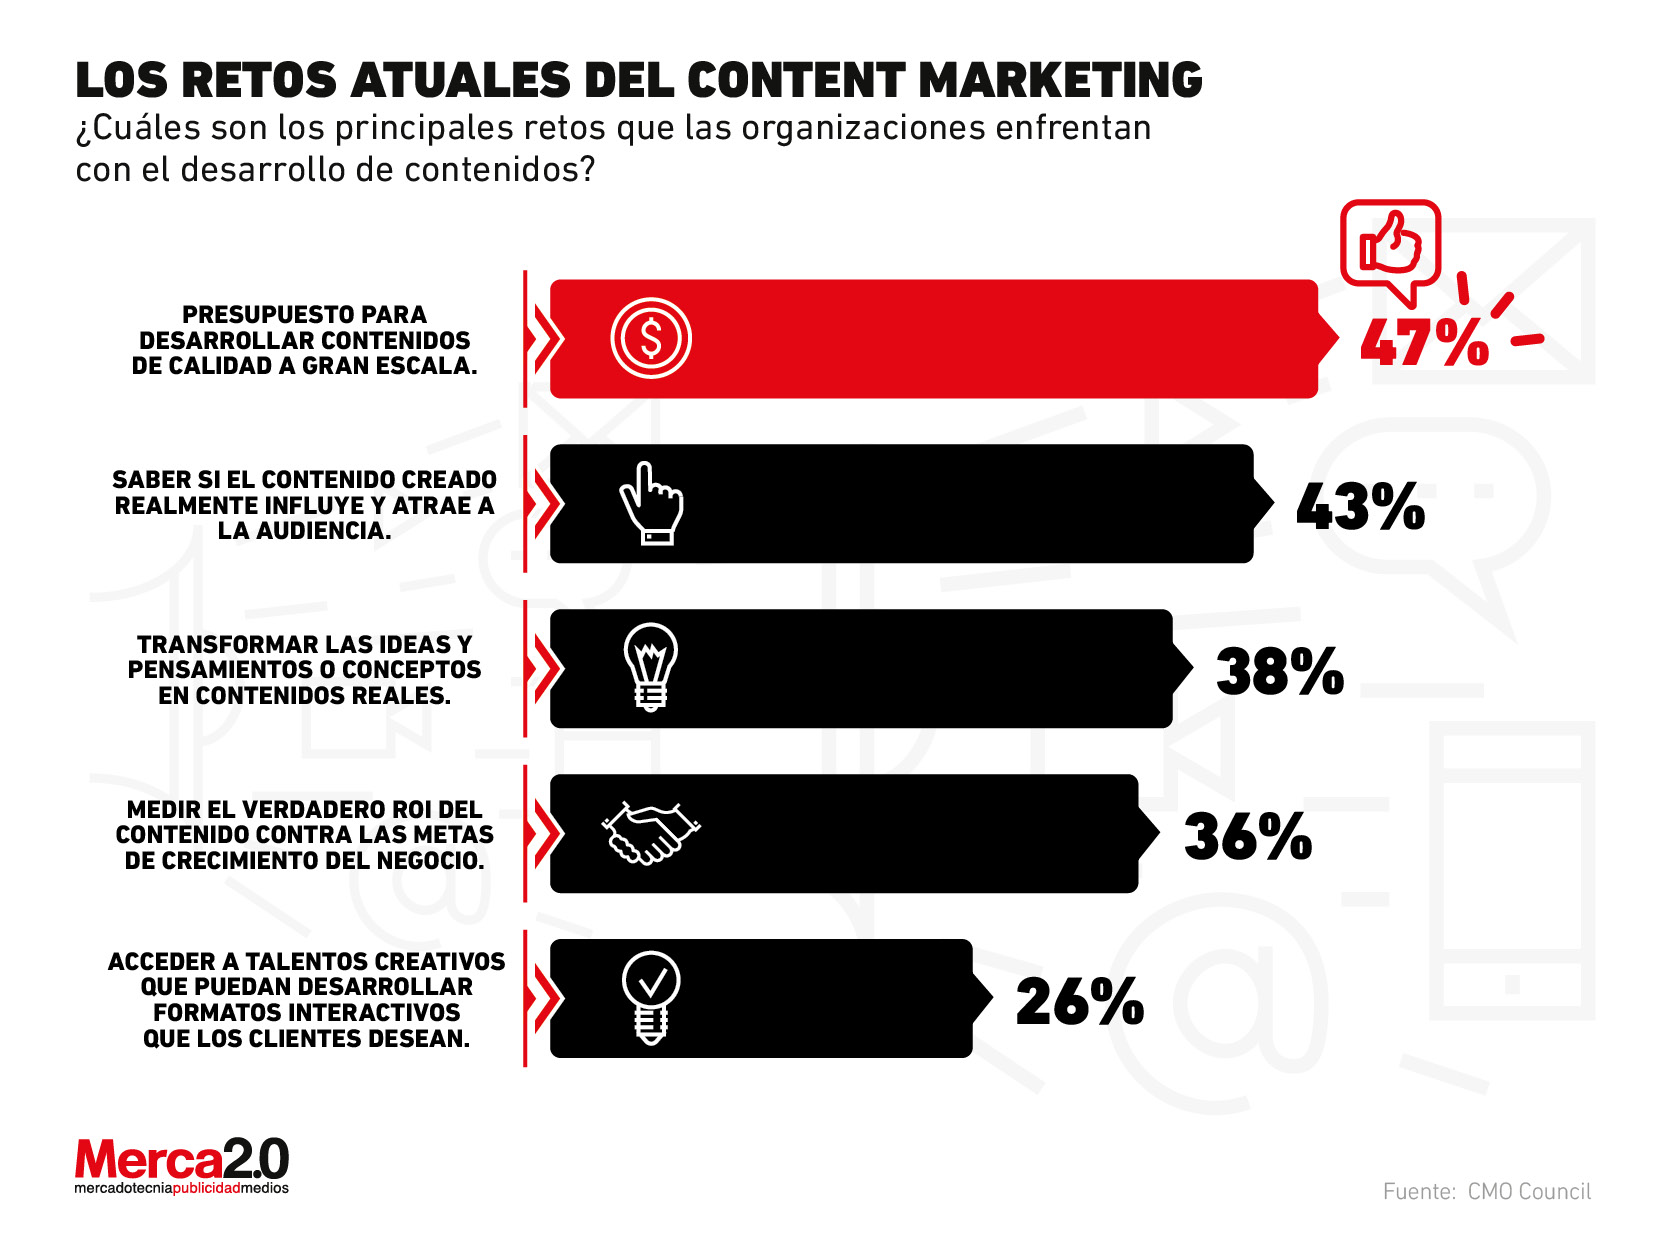 ¿Cuáles son los retos que enfrenta el content marketing actualmente?